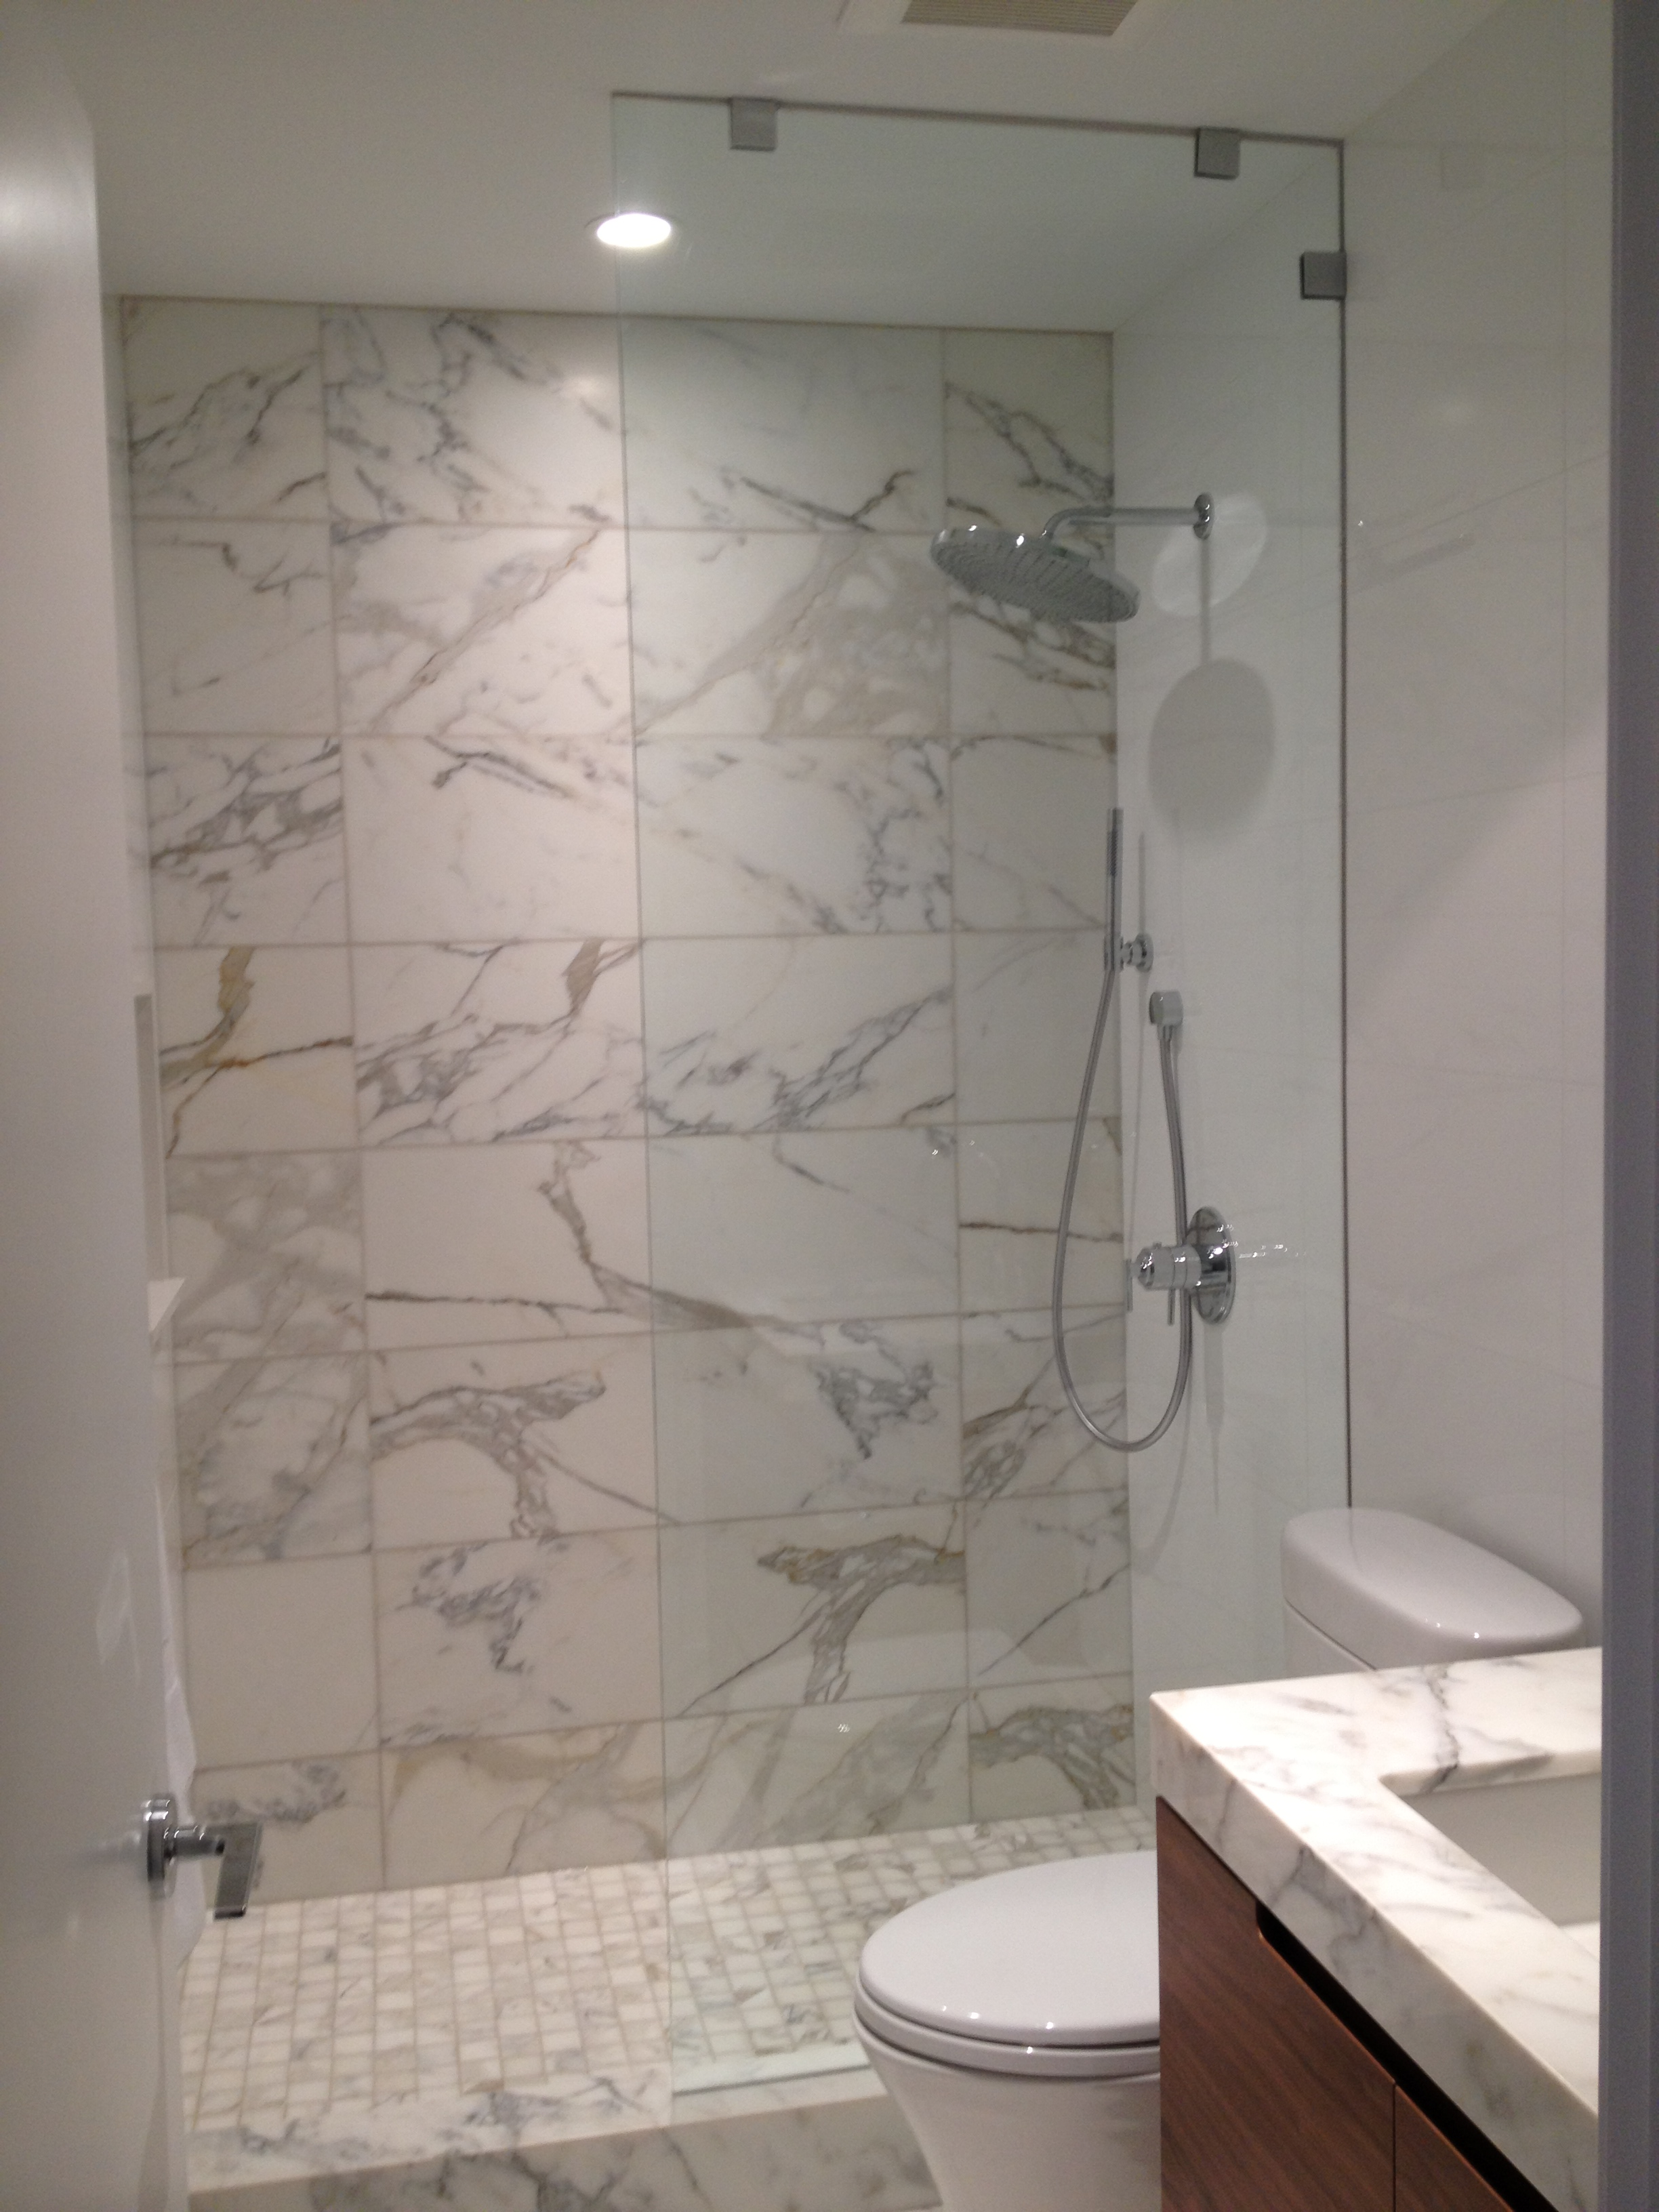 shower doors - repair, replace and install in Vancouver